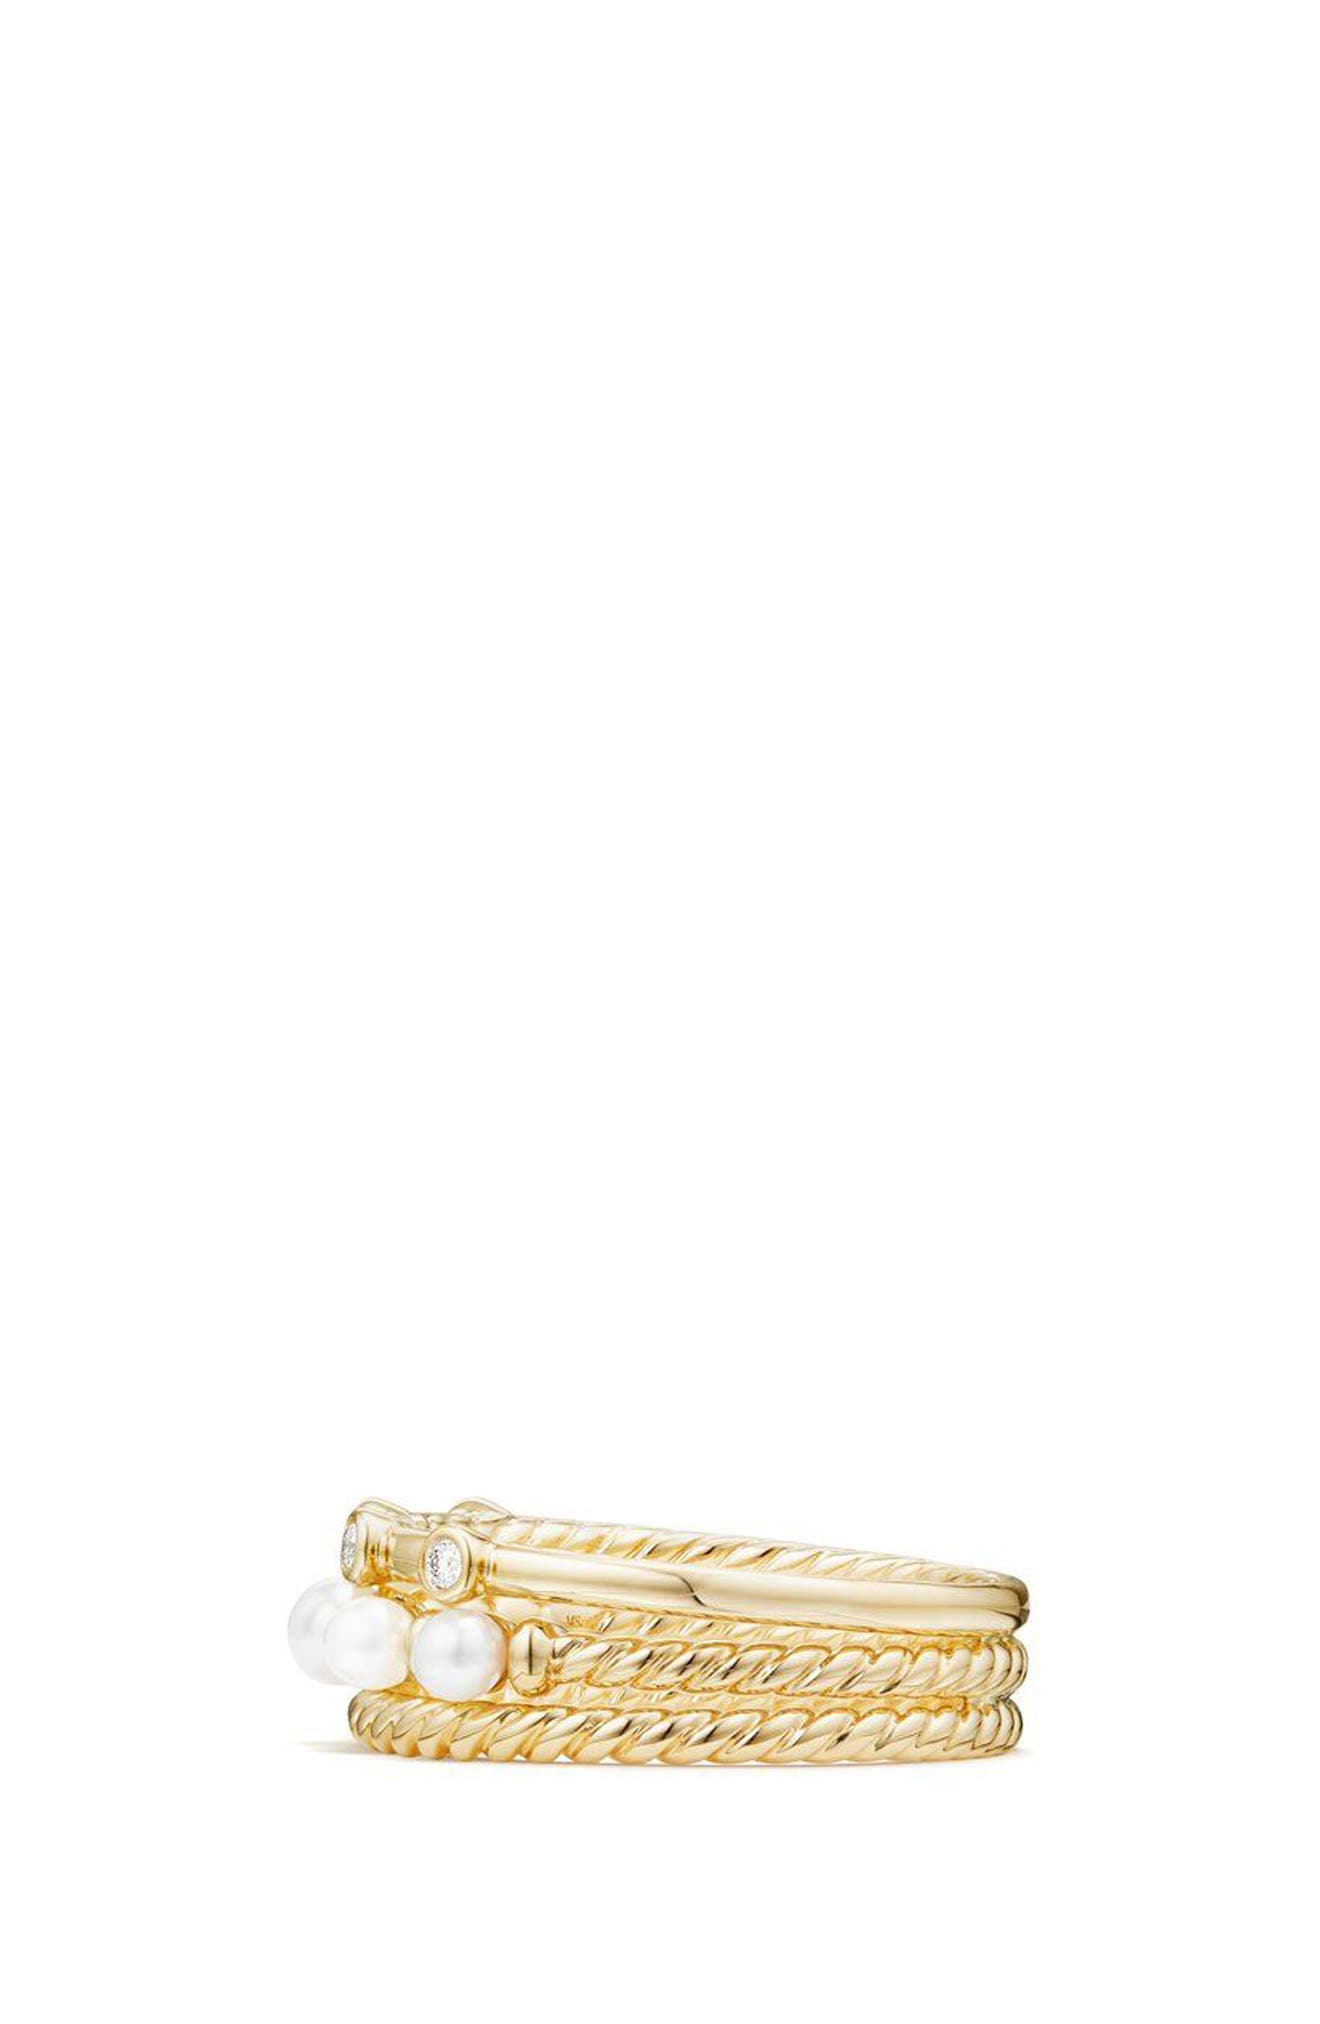 Petite Perle Narrow Multi Row Ring with Pearls and Diamonds,                             Alternate thumbnail 3, color,                             Gold/ Diamond/ Pearl